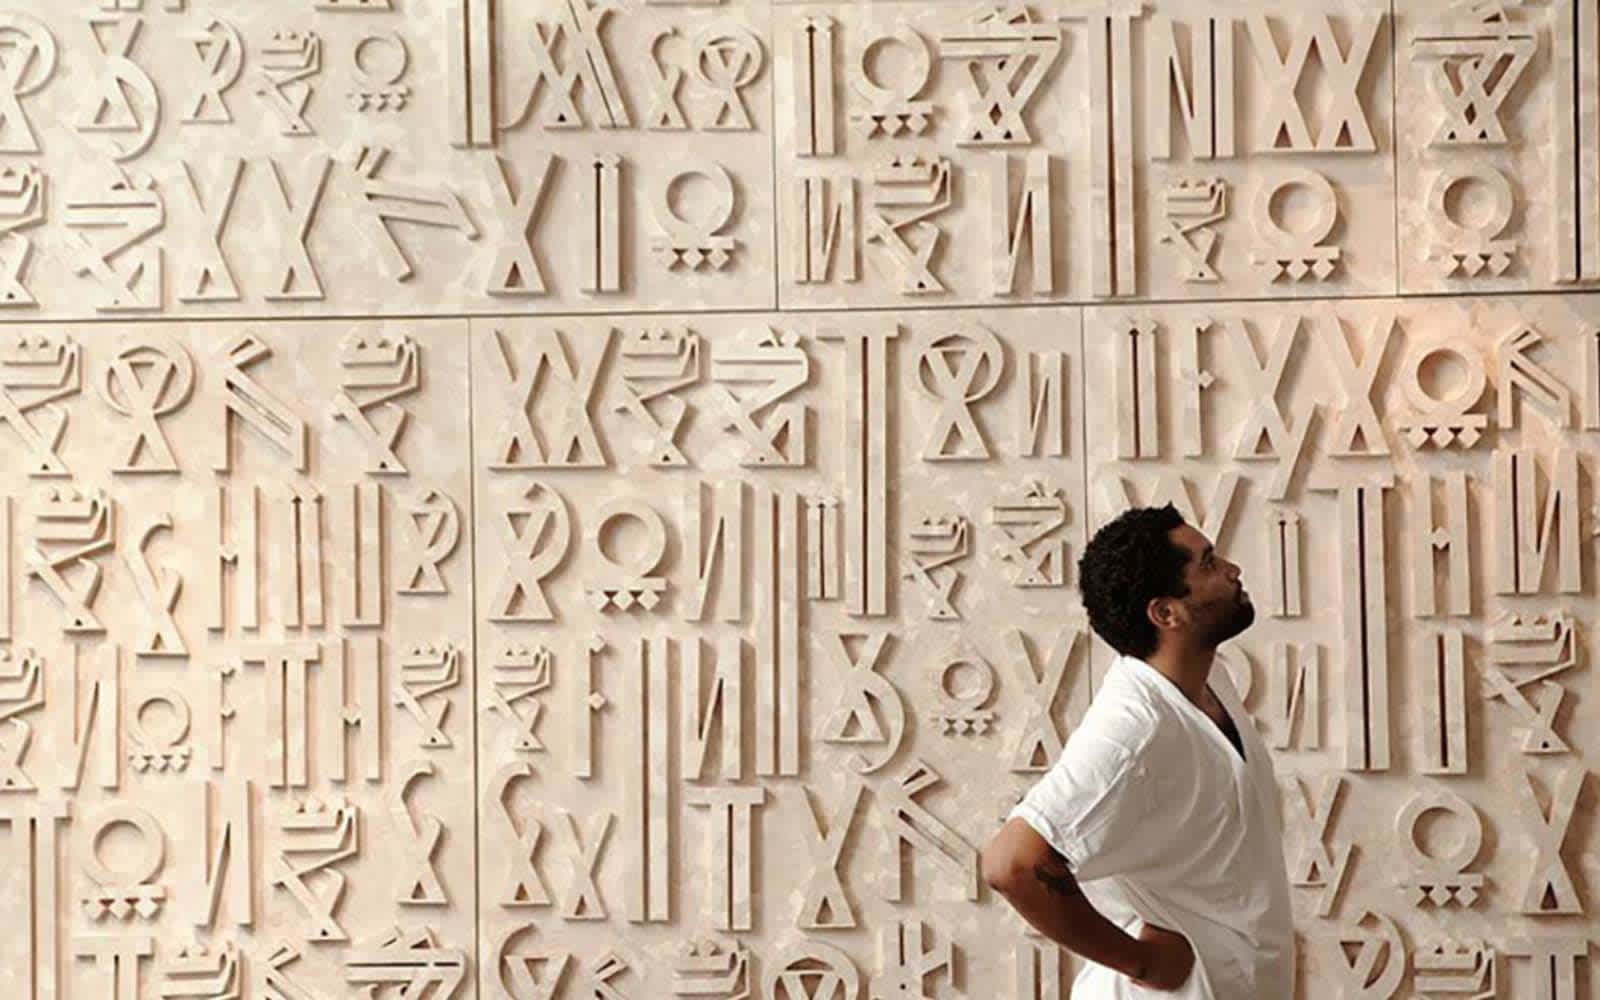 5 Things to know about RETNA, An artist that has collaborated with super brands Chanel, Louis Vuitton and Nike.